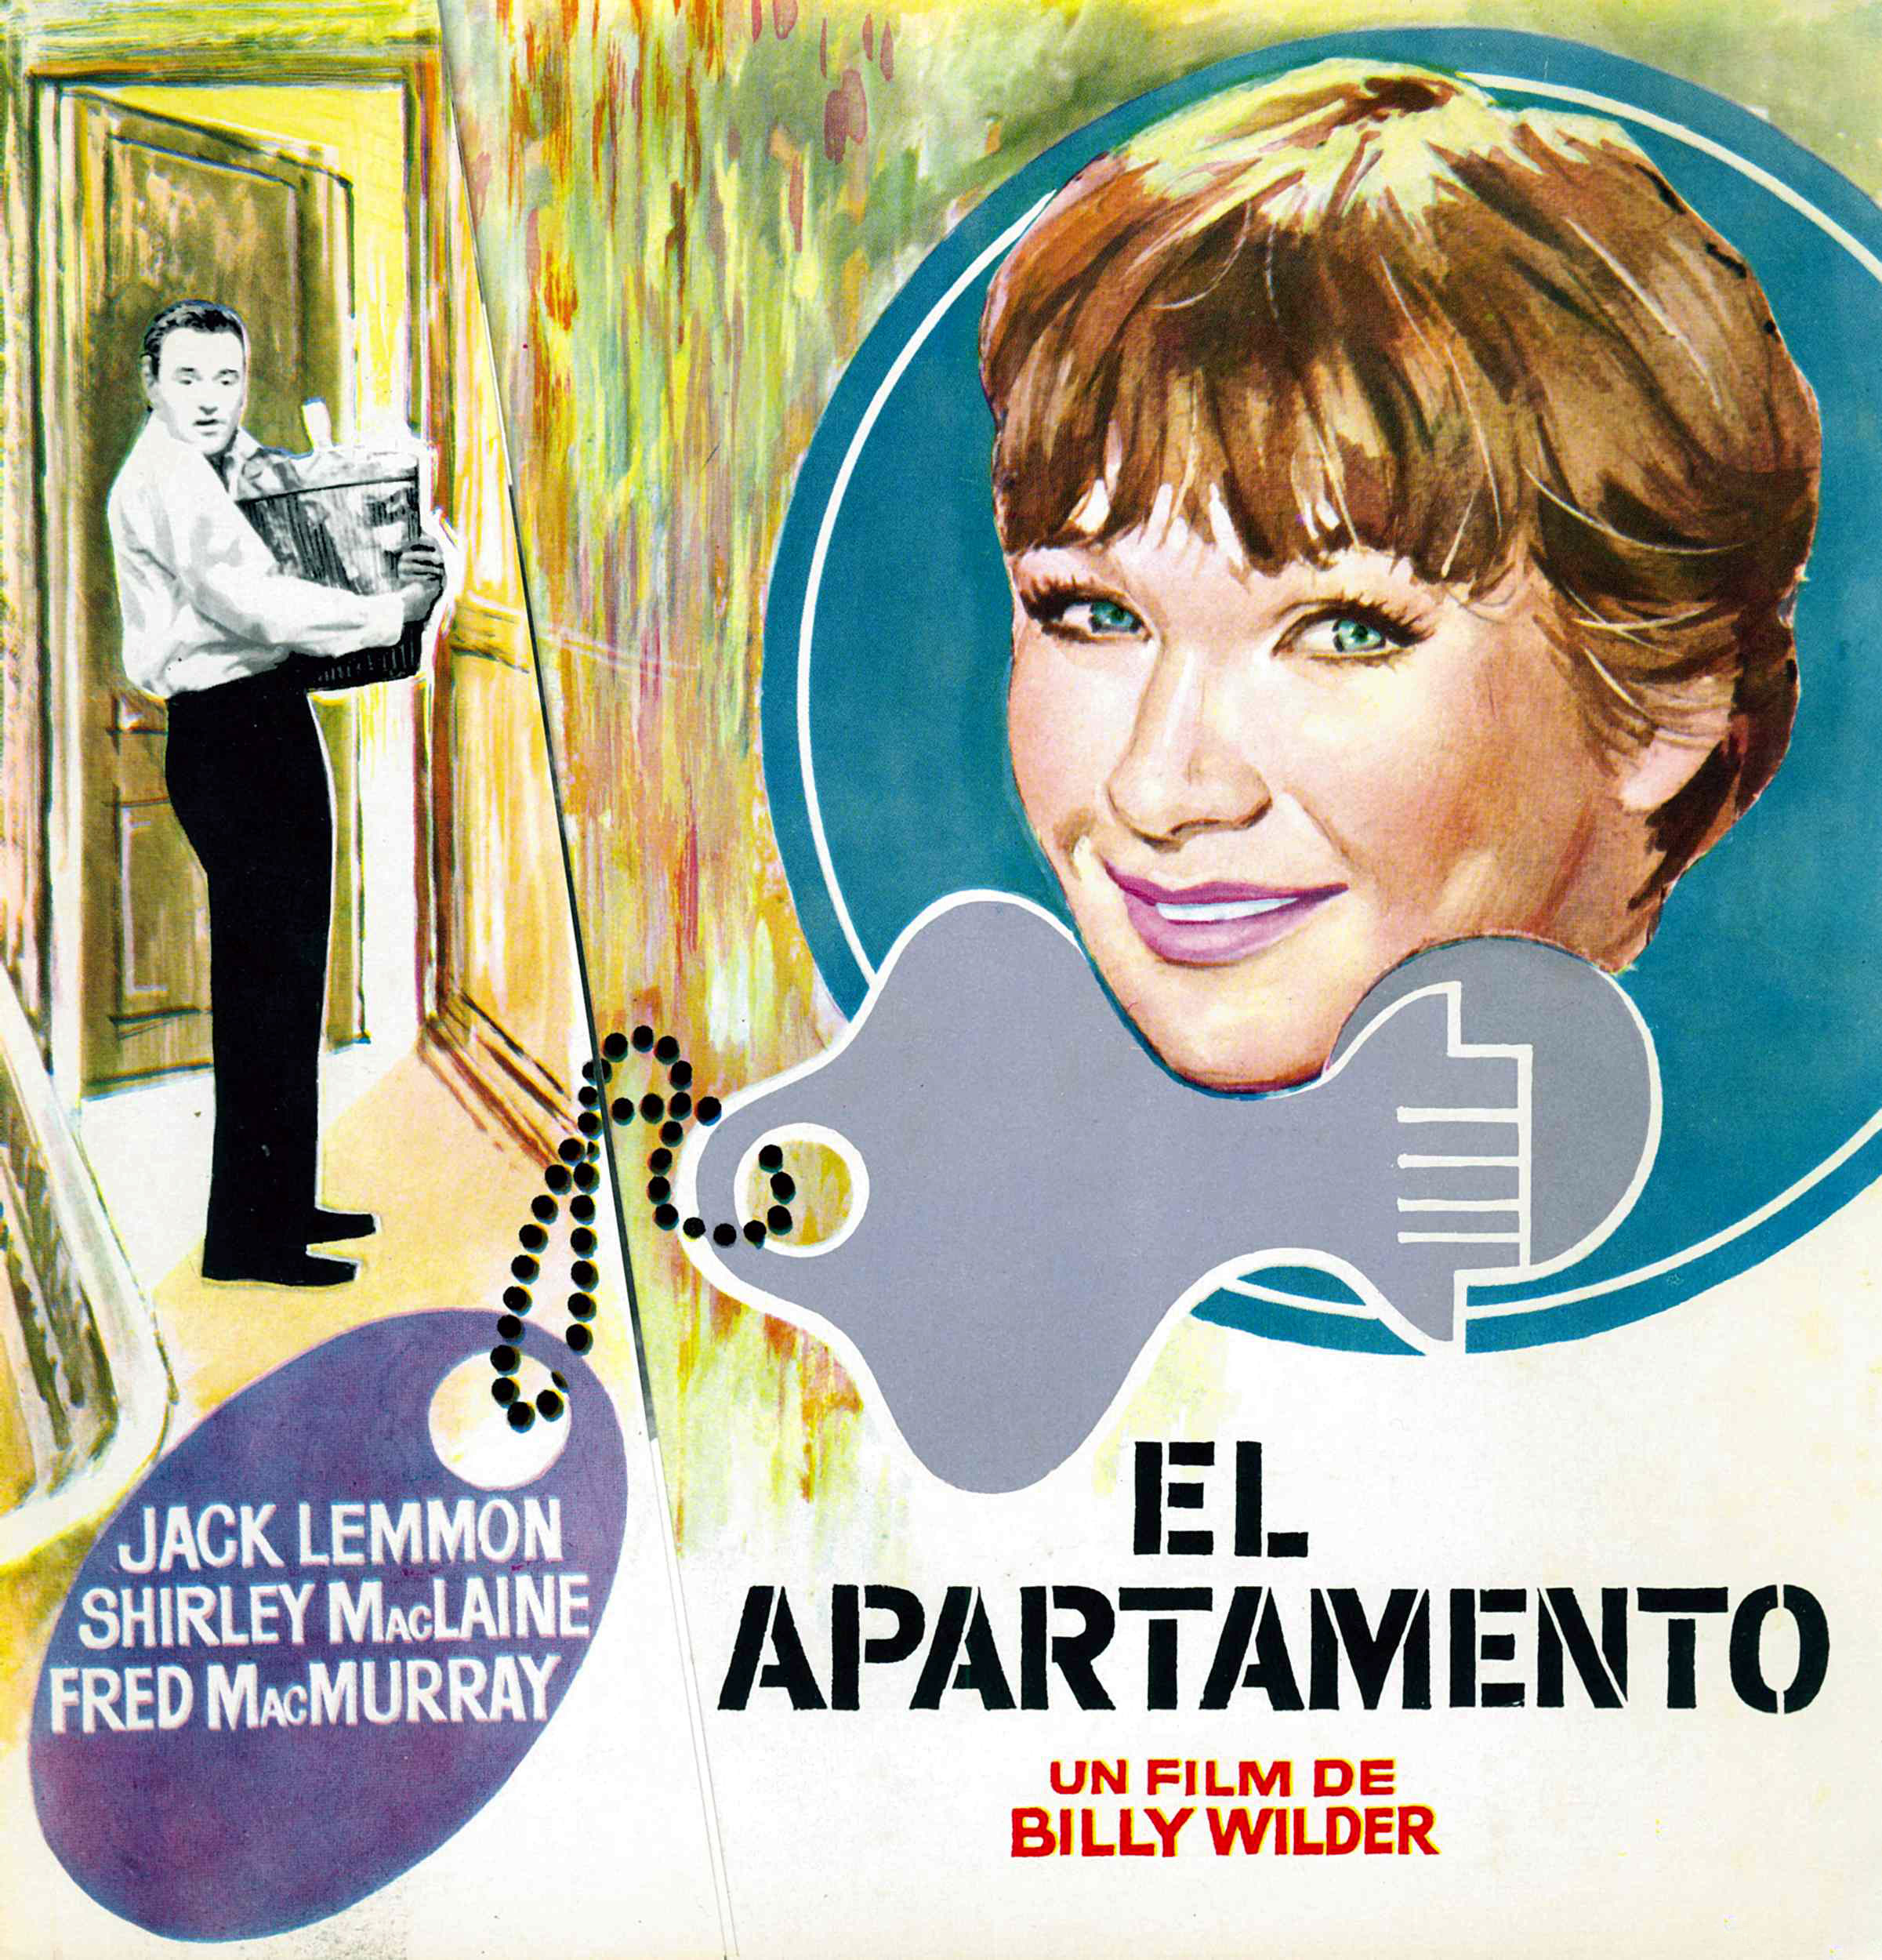 The Apartment Movie: Apartment, The